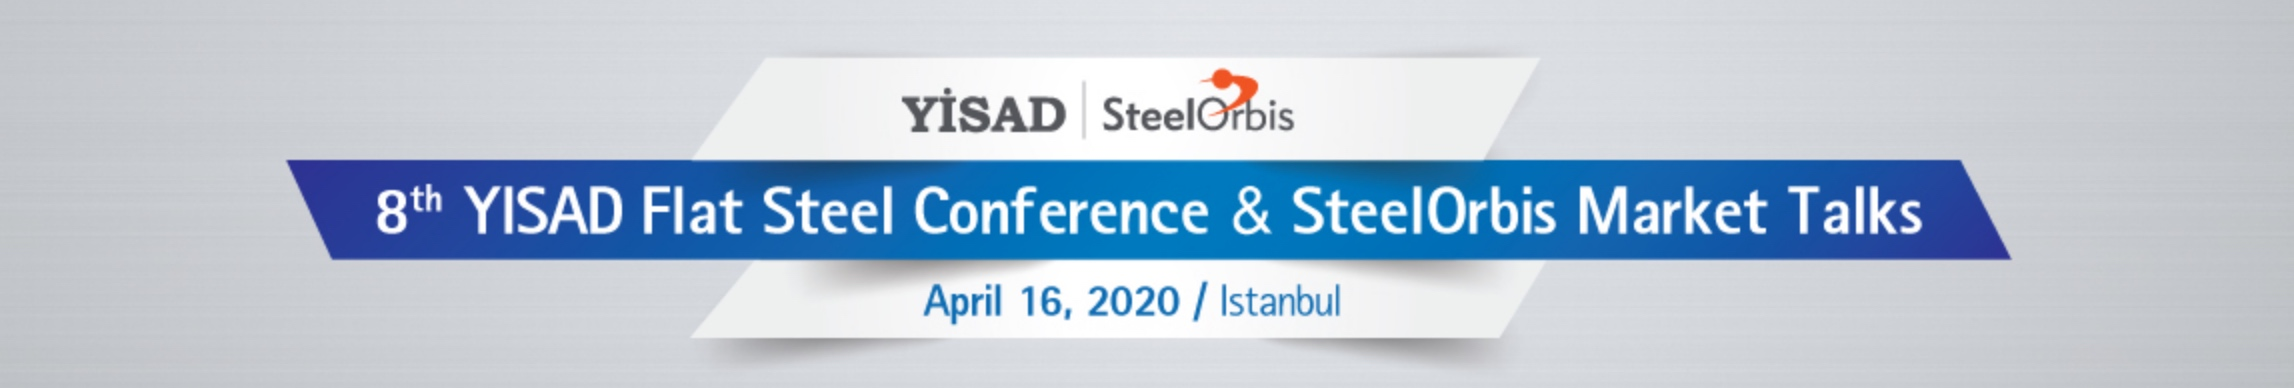 8th YISAD Flat Steel Conference & SteelOrbis Market Talks